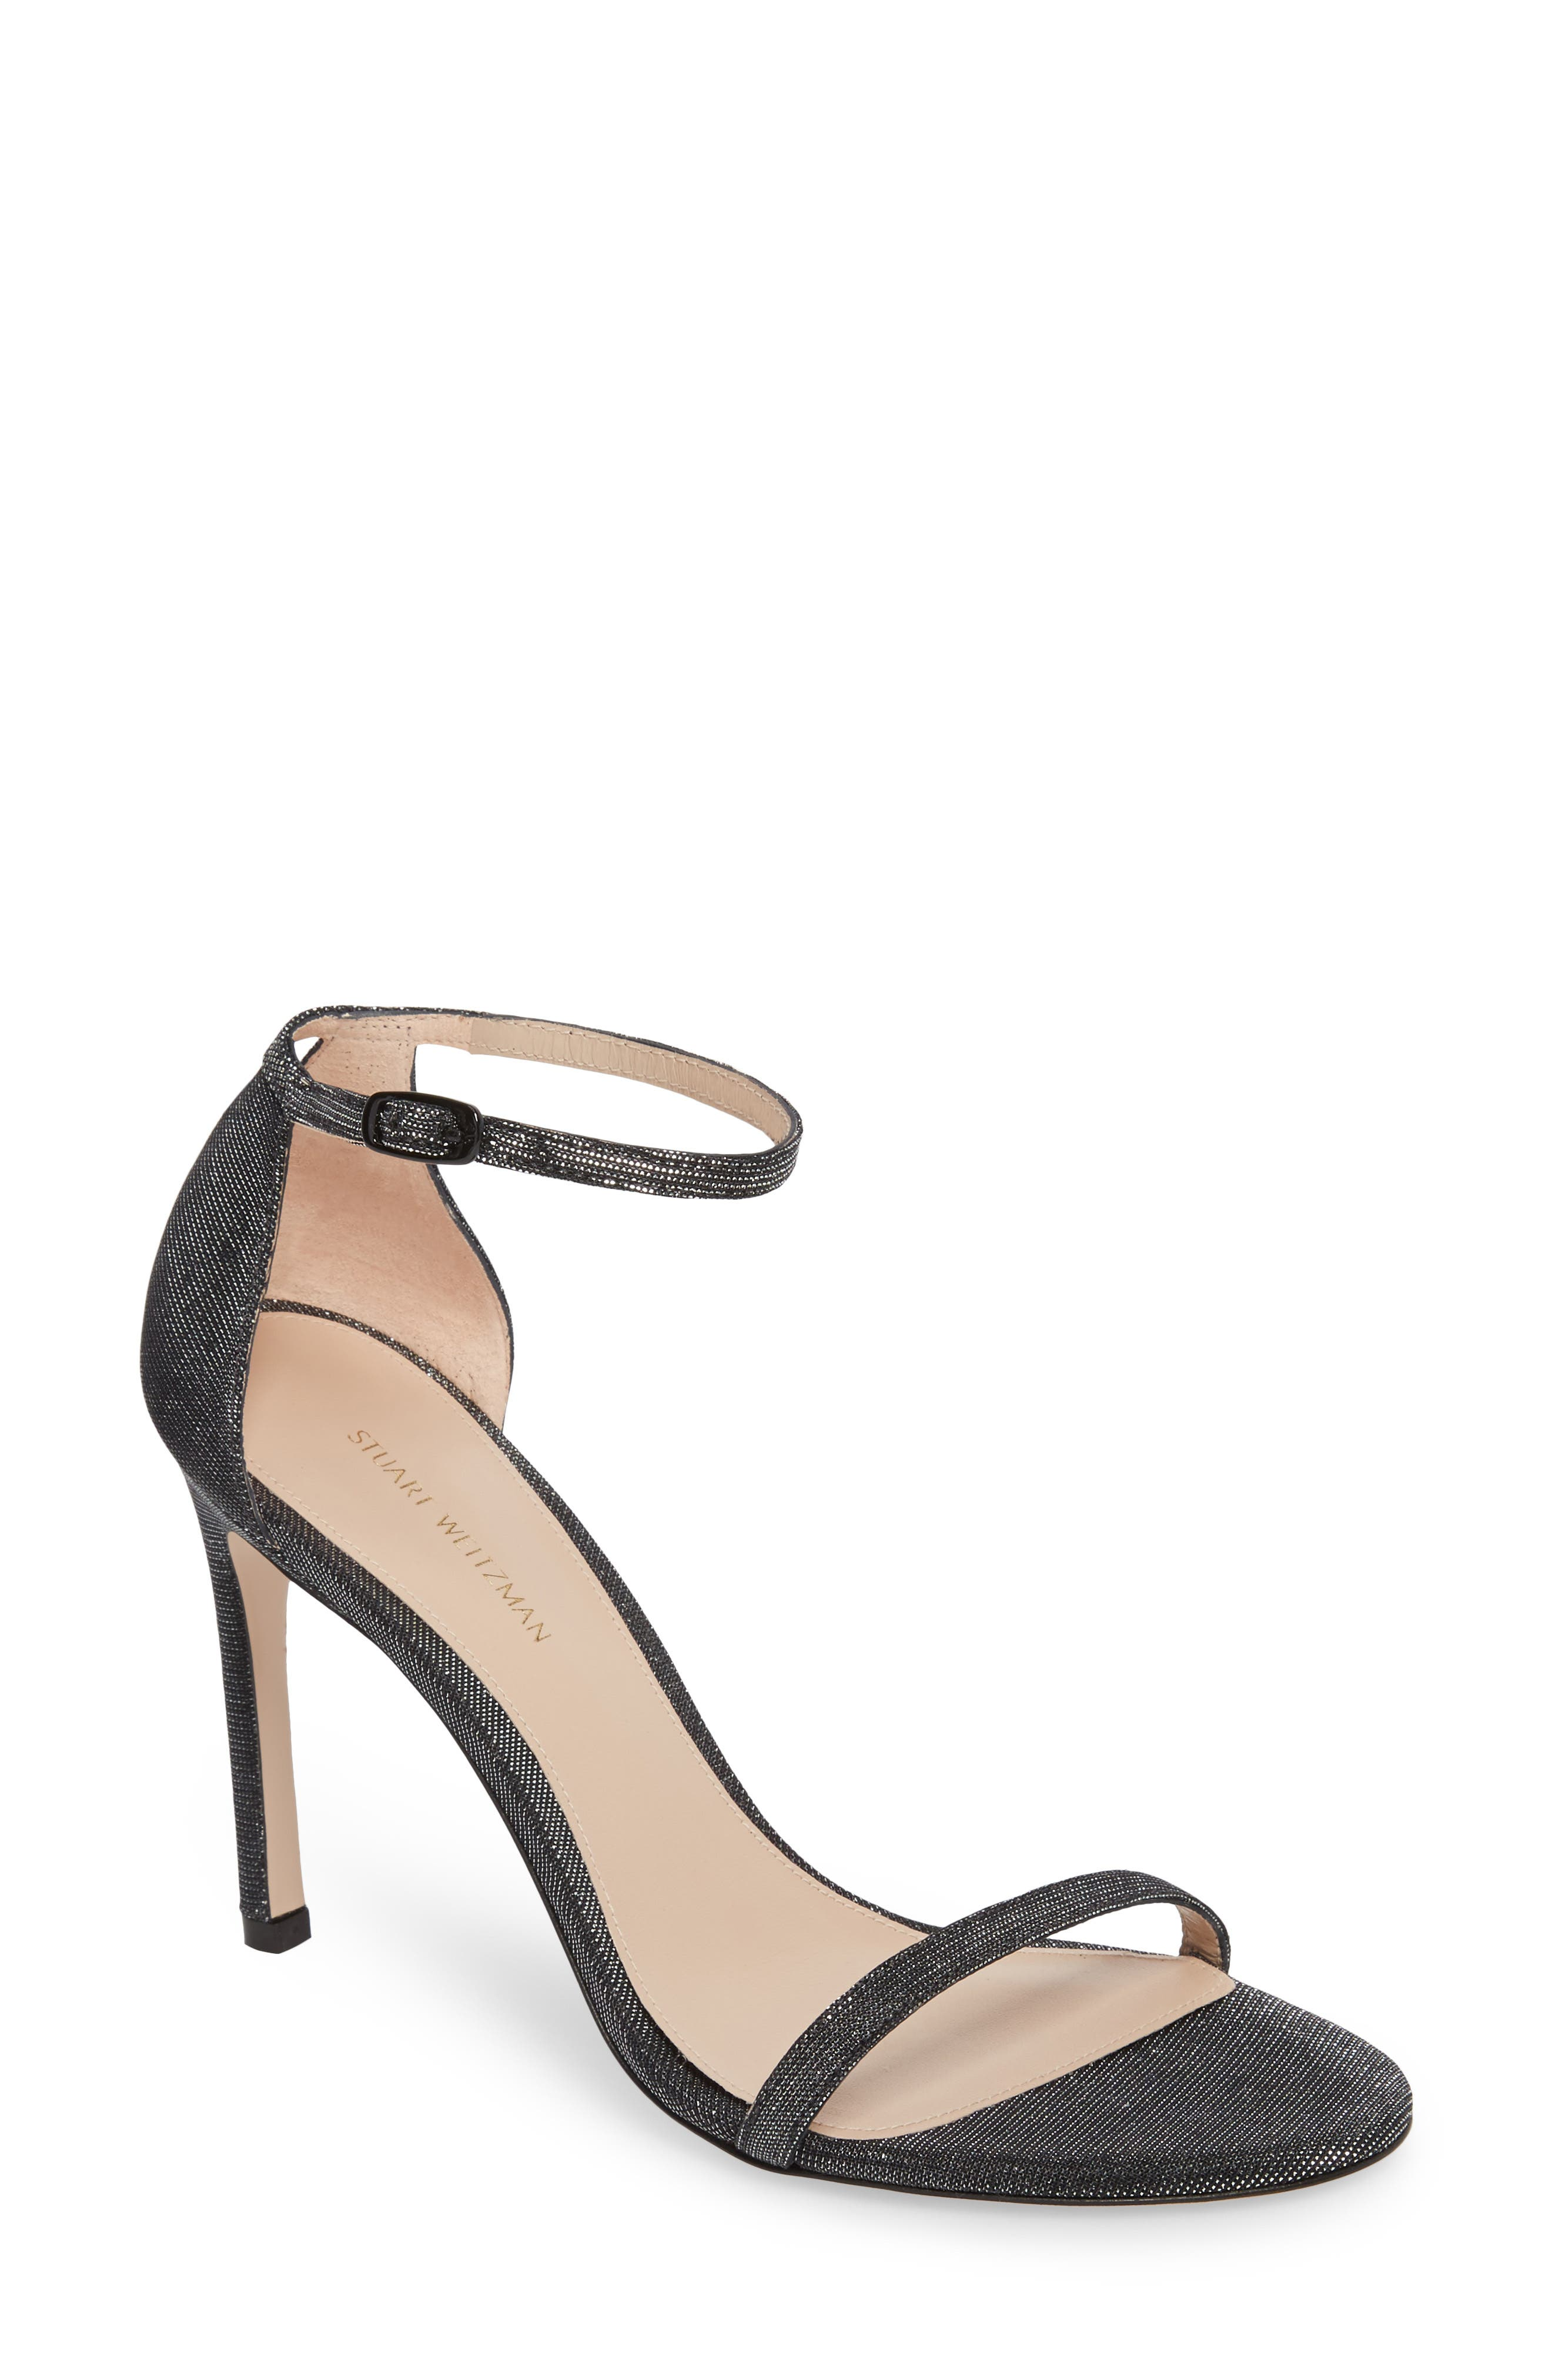 Nudistsong Ankle Strap Sandal,                             Main thumbnail 3, color,